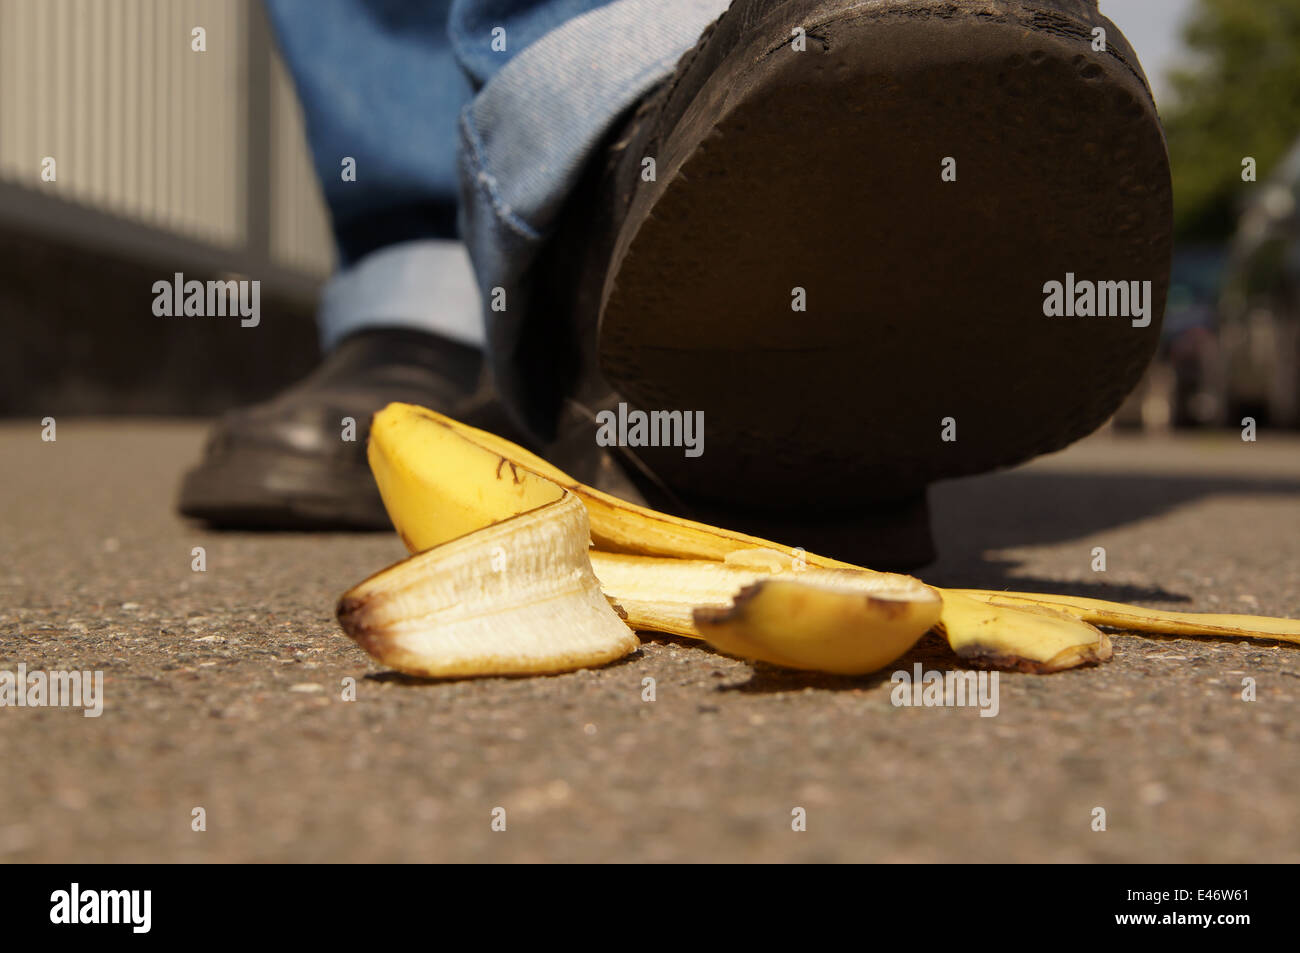 slipping on a banana skin - Stock Image